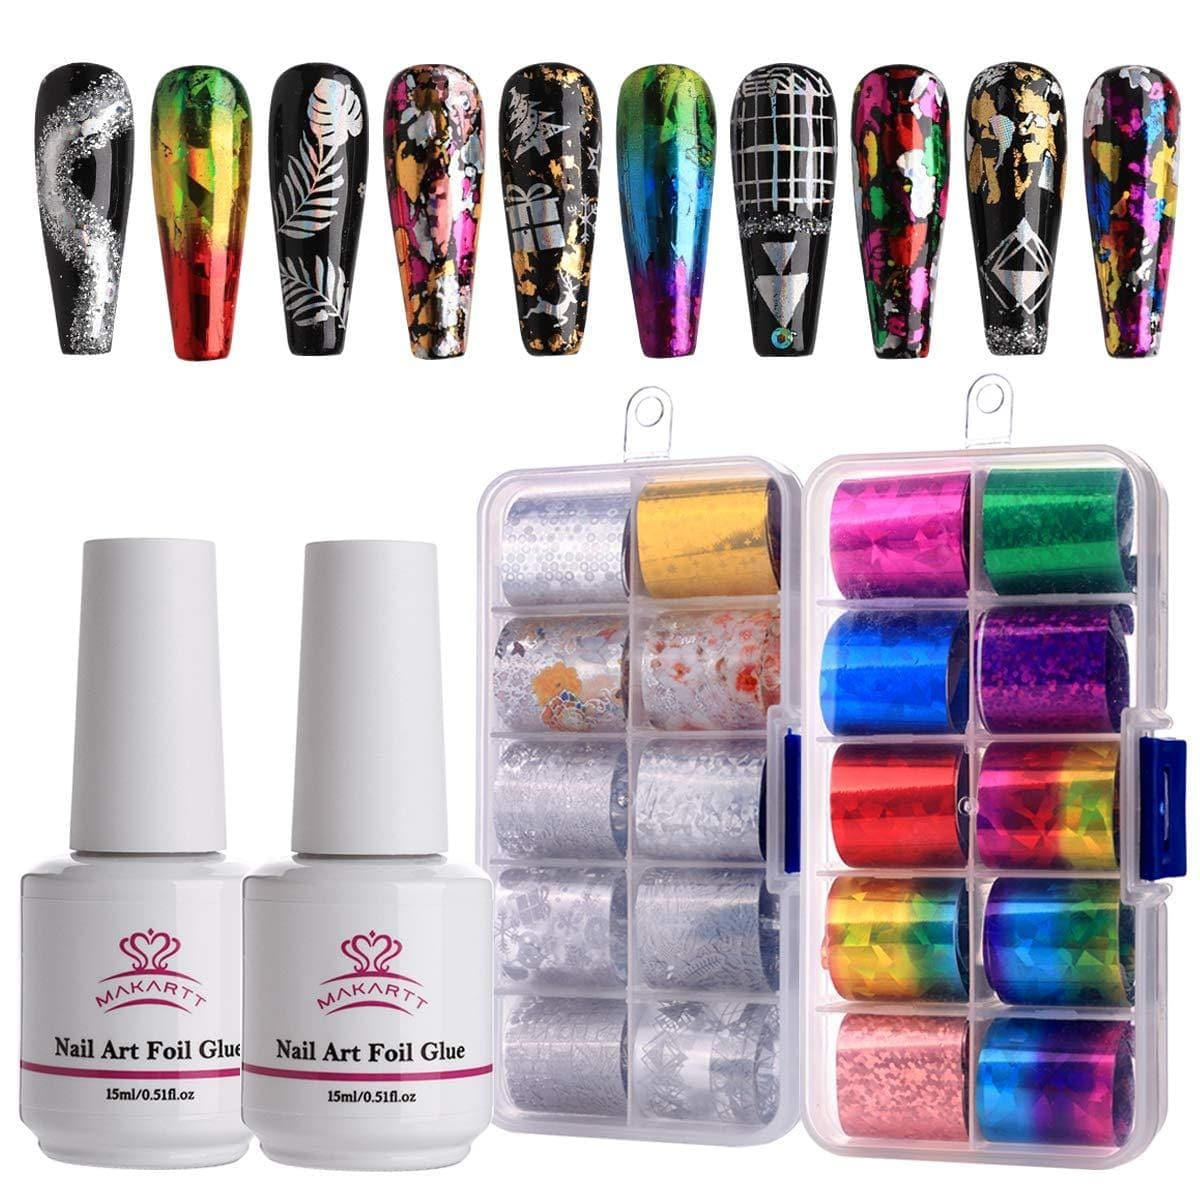 Nail Art Foil Decoration Set in Starry Sky - Makartt